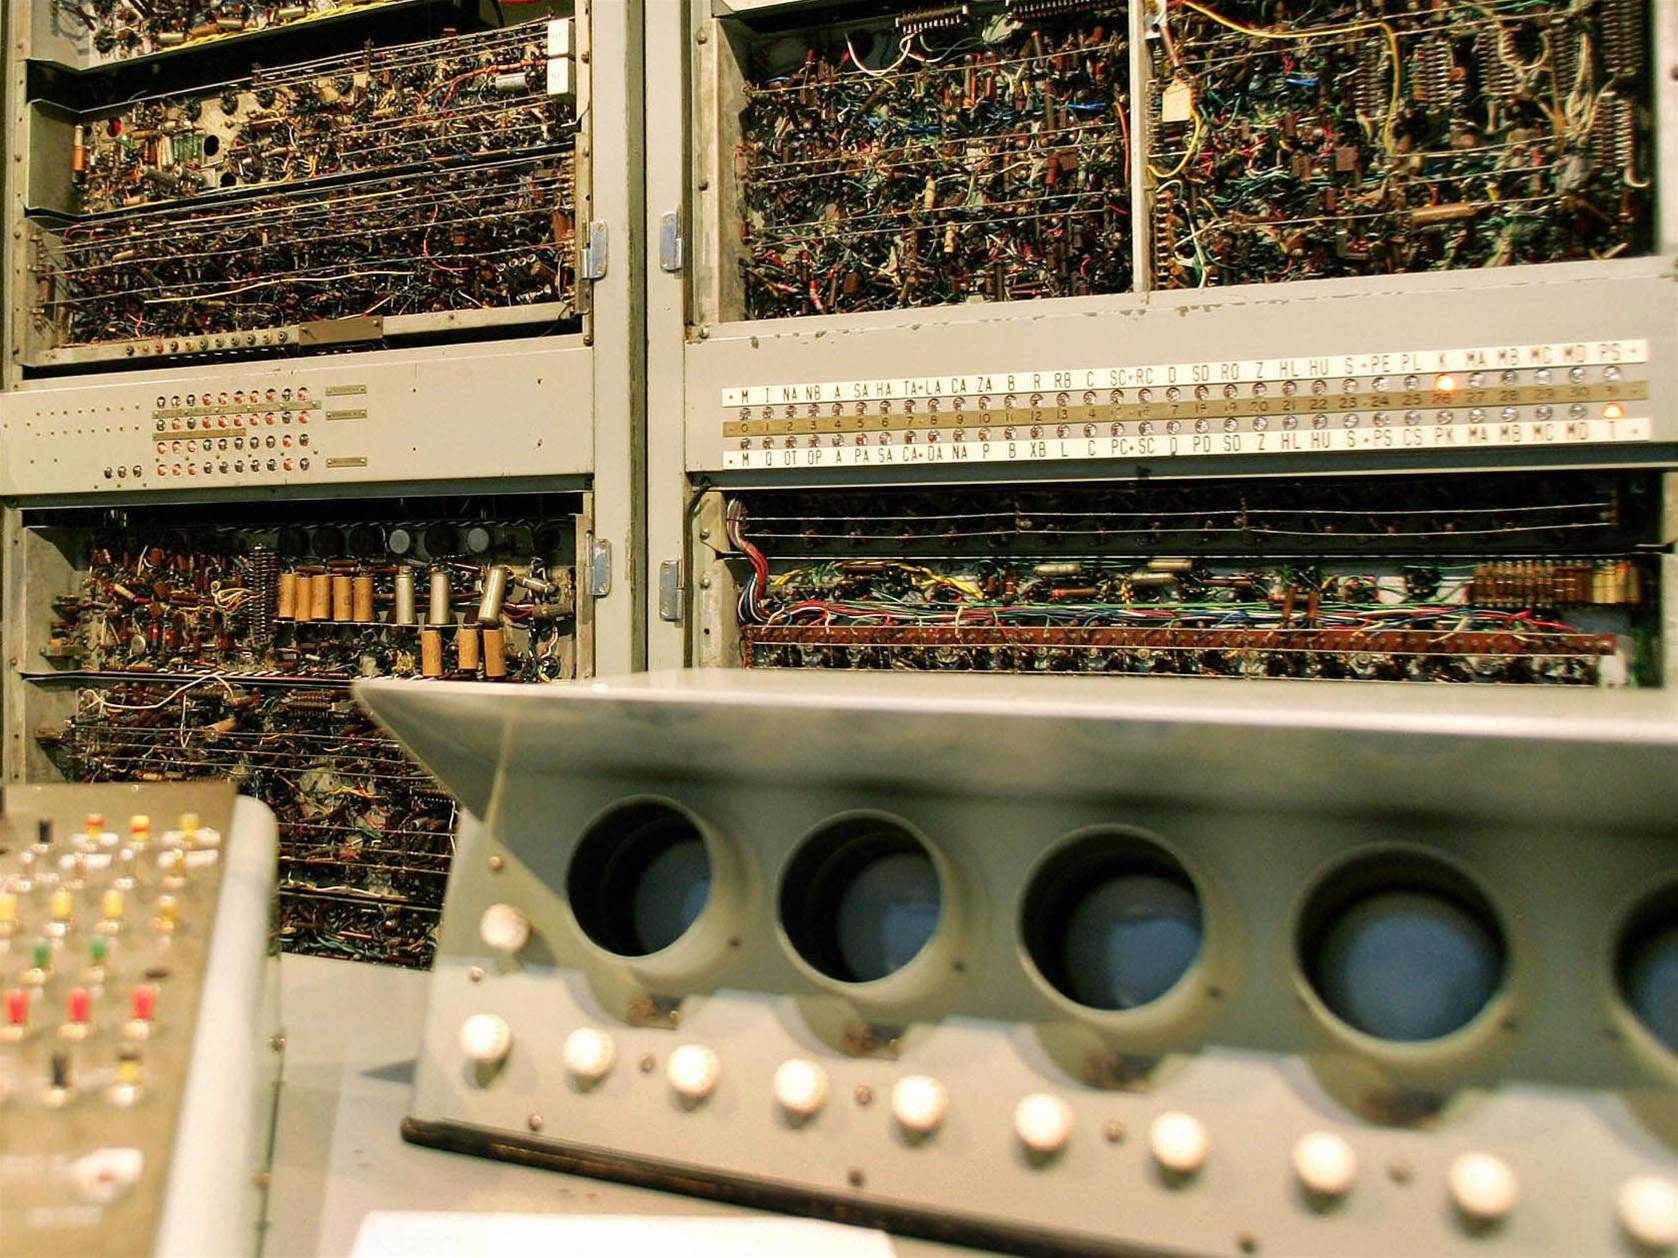 In Pictures: CSIRAC - Australia's first digital computer